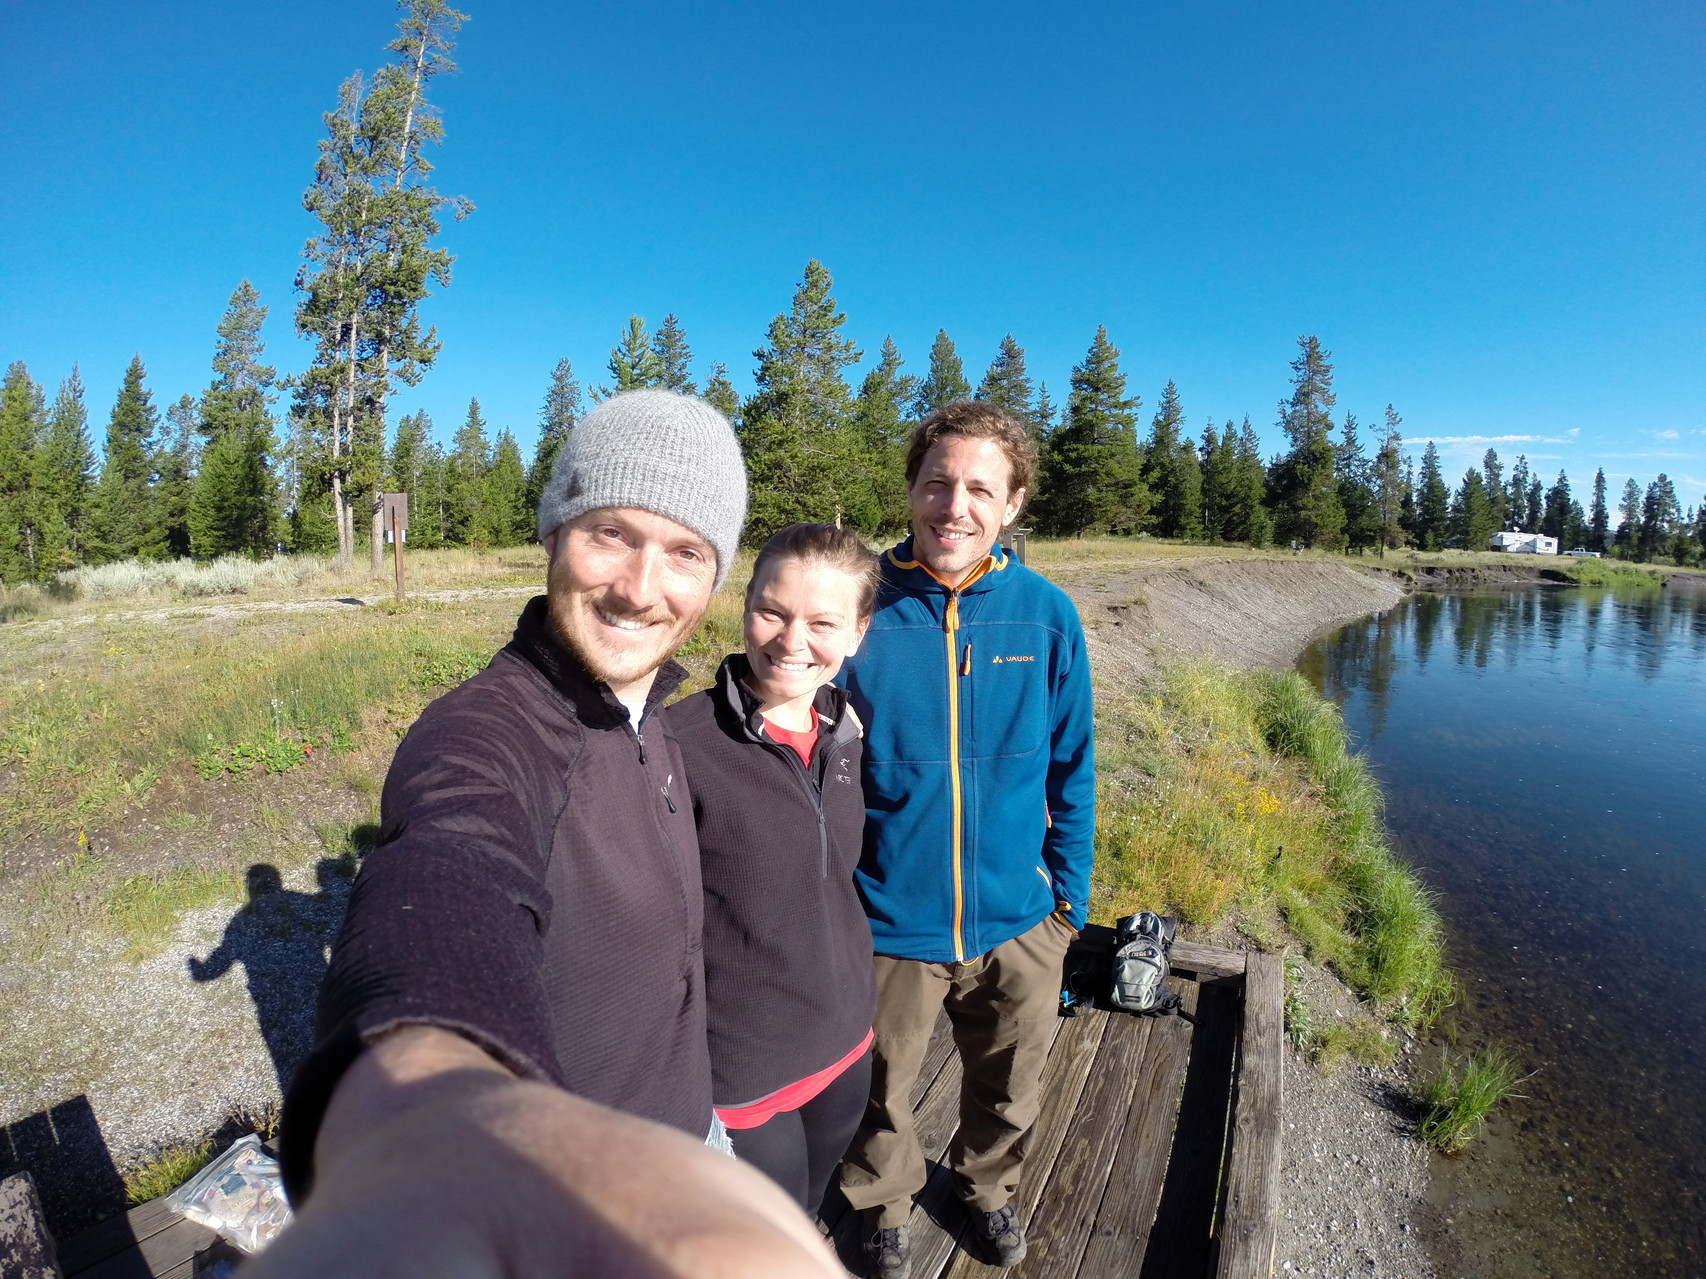 One campsite left in West Yellowstone so we shared with our new friend Sebastian from Germany